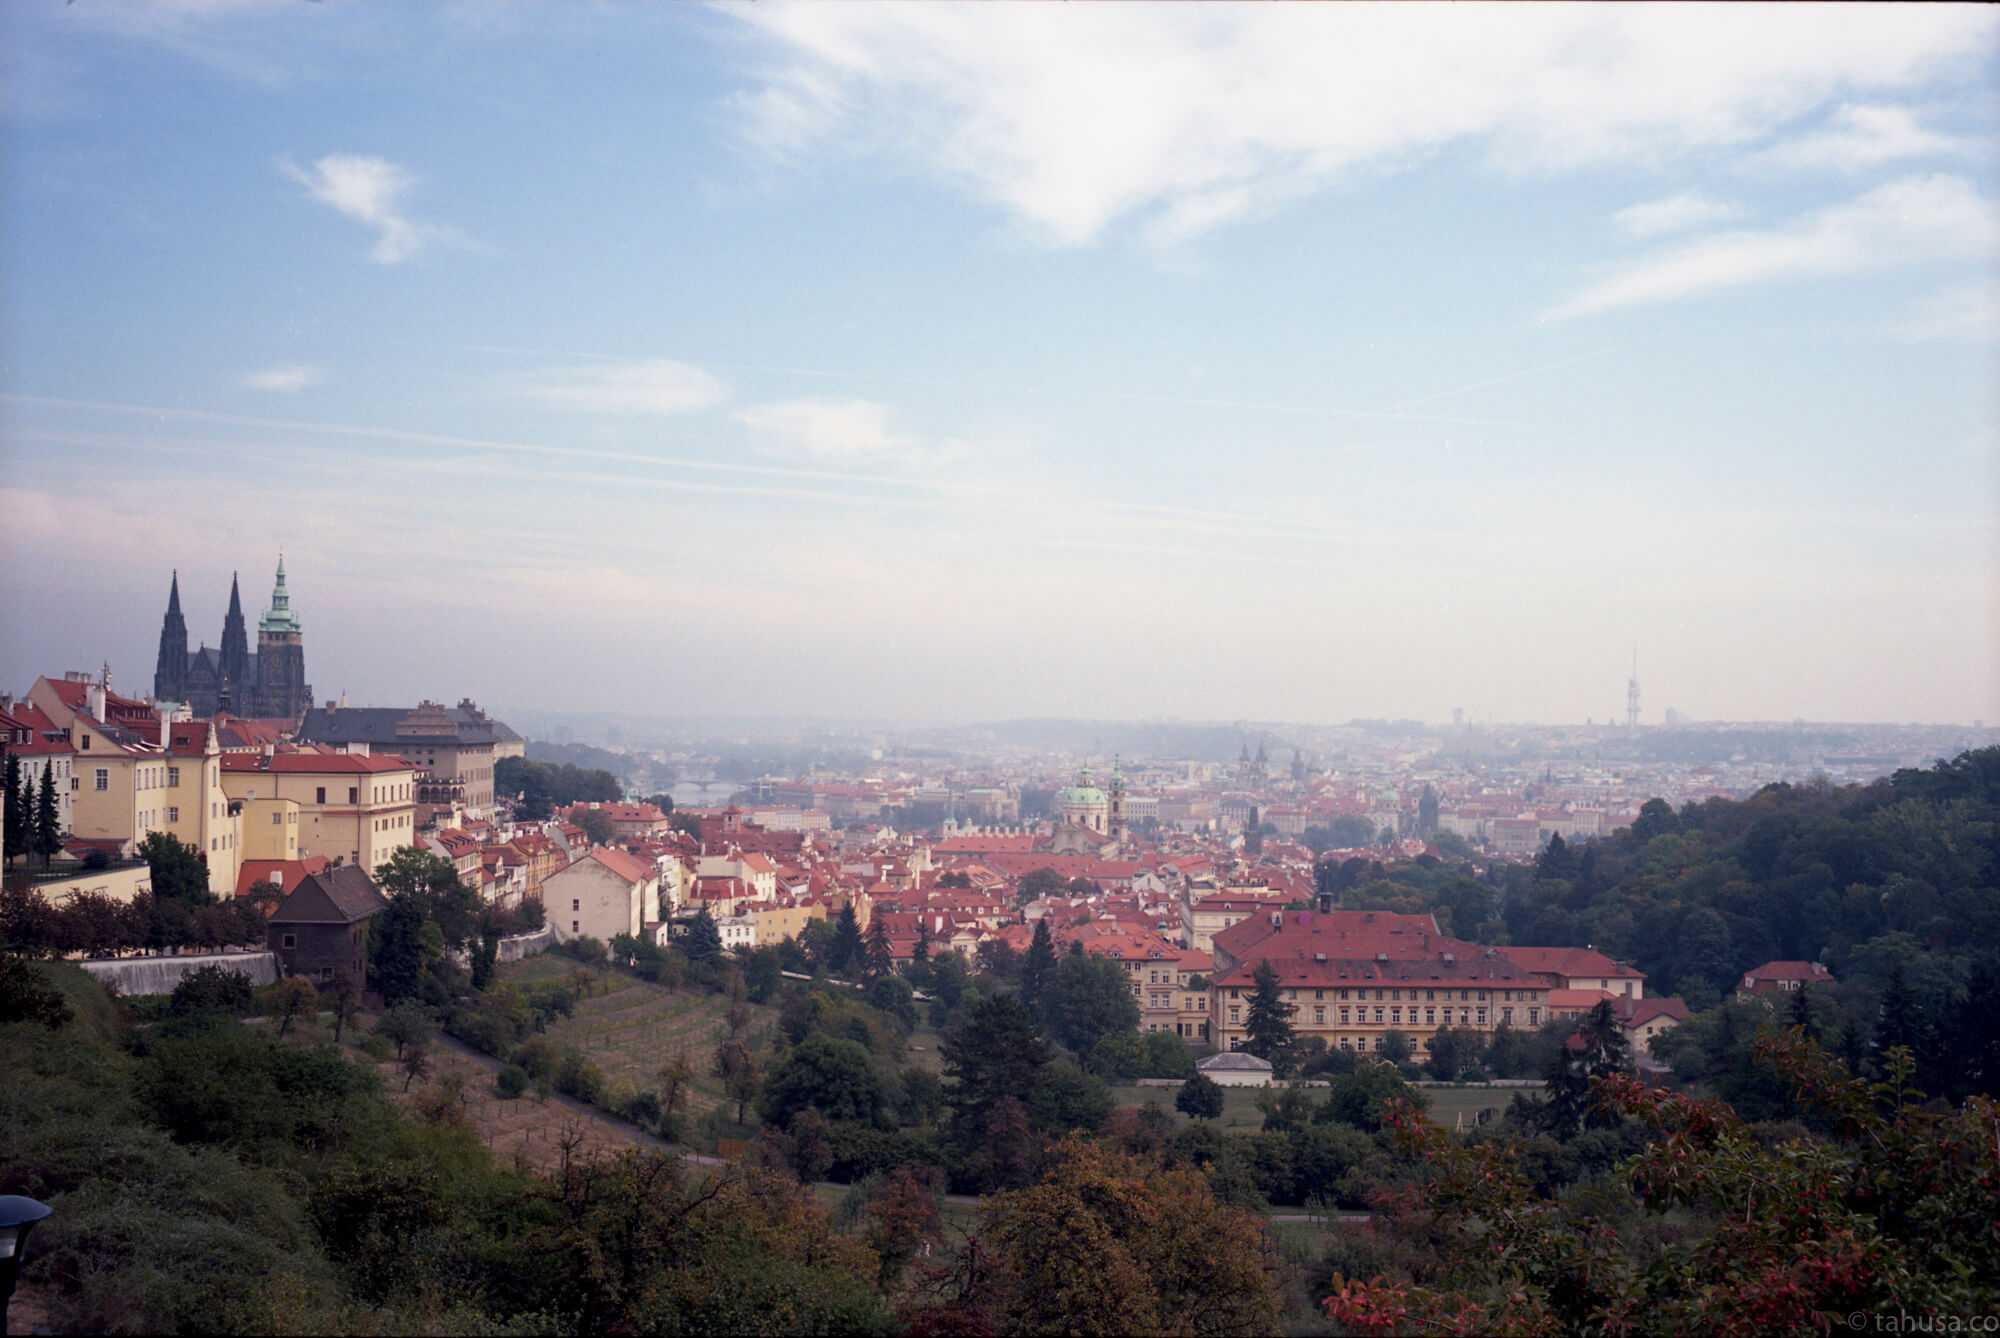 top-view-in-prague-czech-republic-travel-photography-using-ektar-100-kodak-and-summicron-35mm-f2-8elements-v1-leica-film